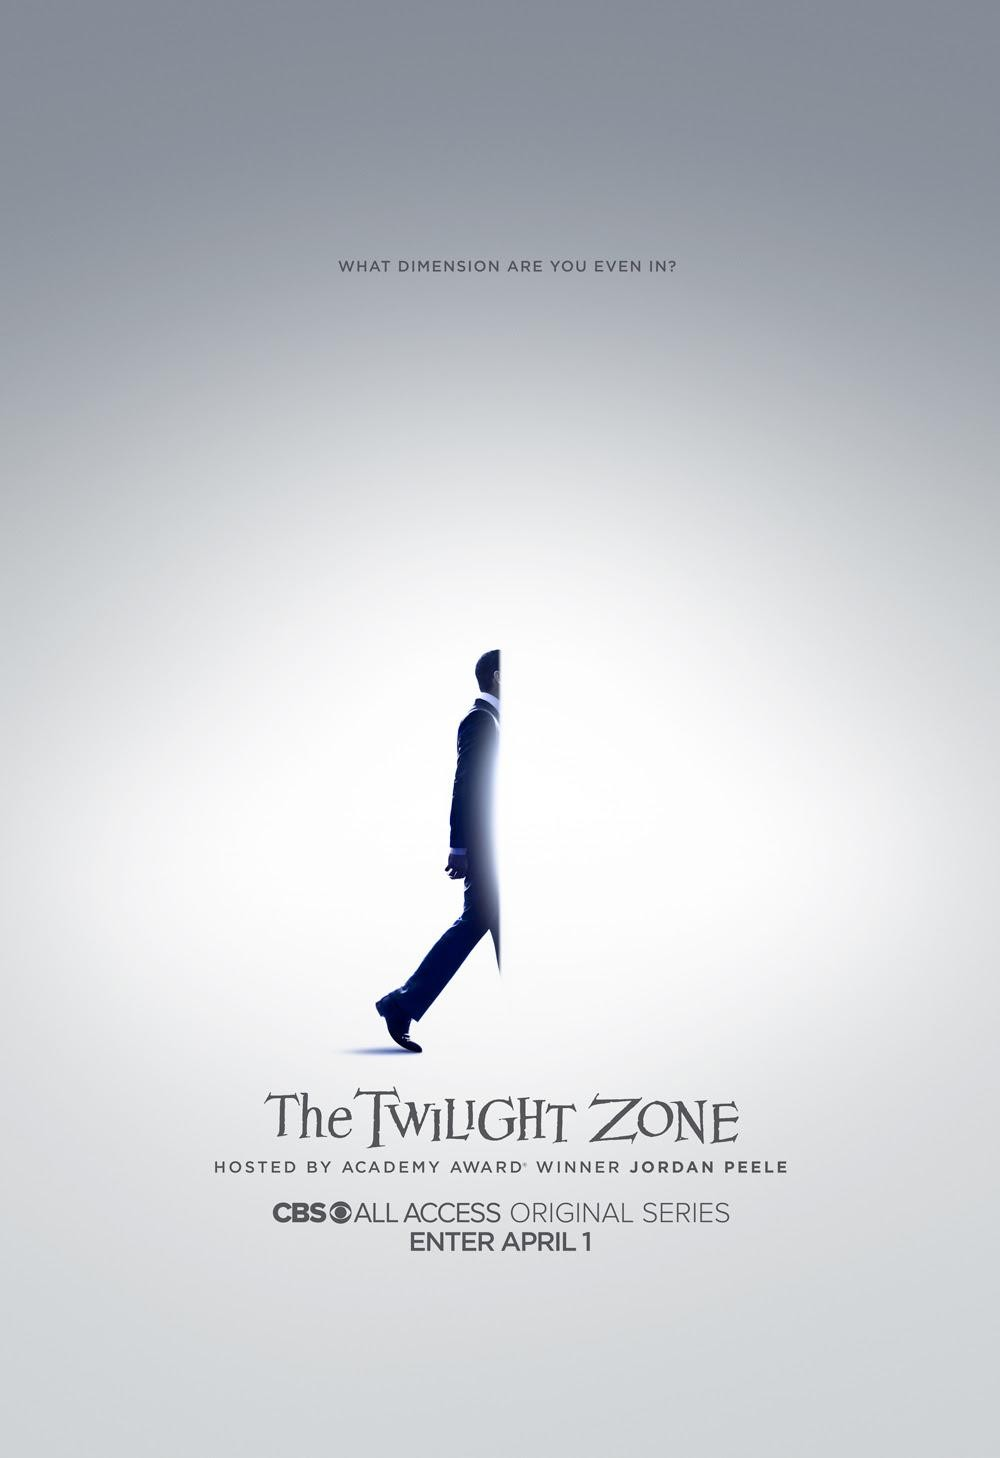 The Twilight Zone 新阴阳魔界